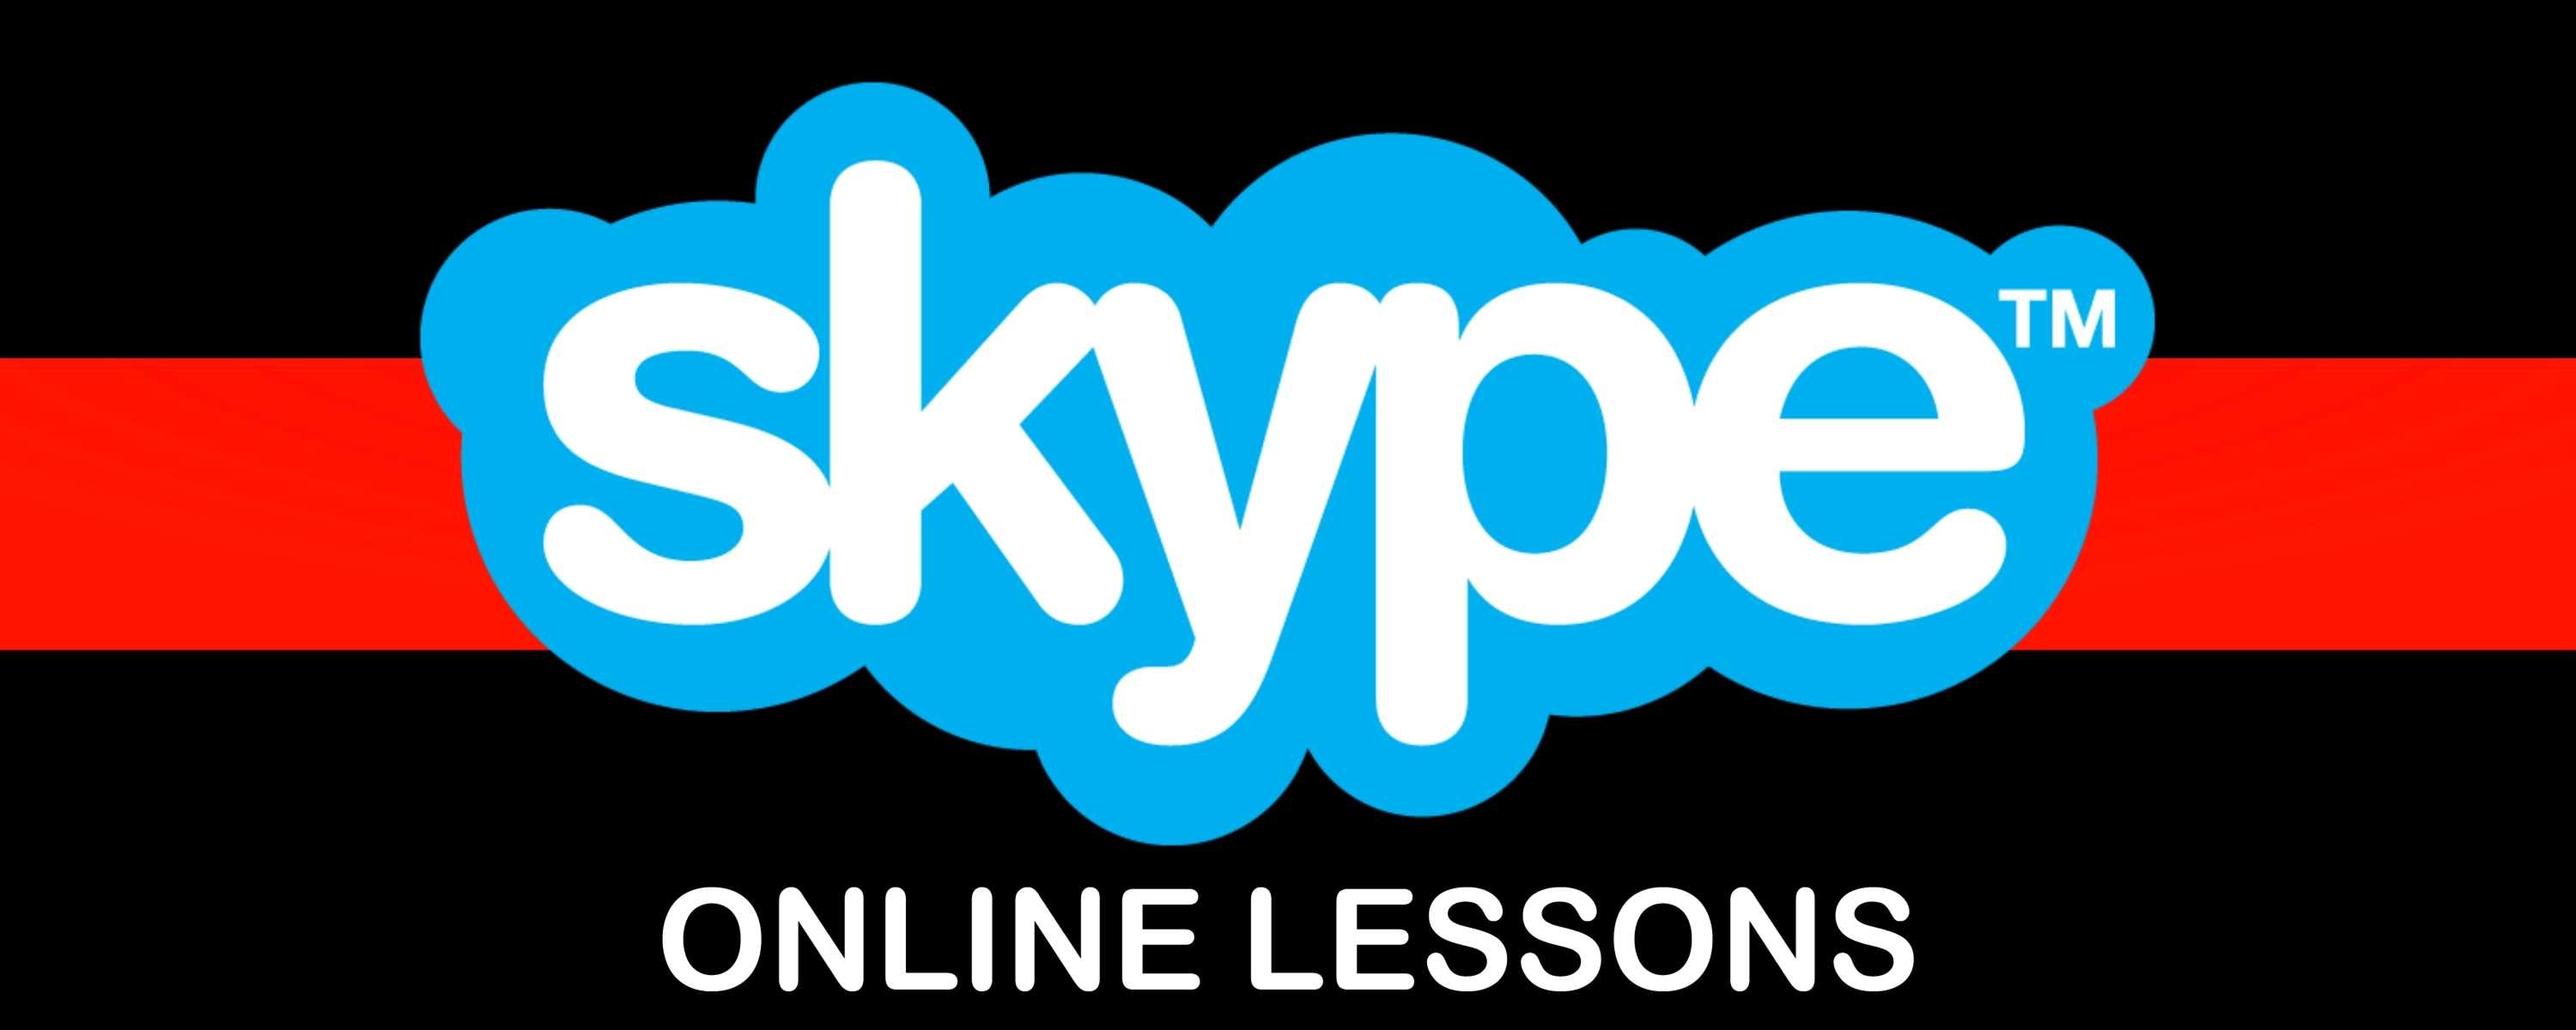 Drum Lessons Nashville, Drum Lessons Buffalo, Drum Lessons Online